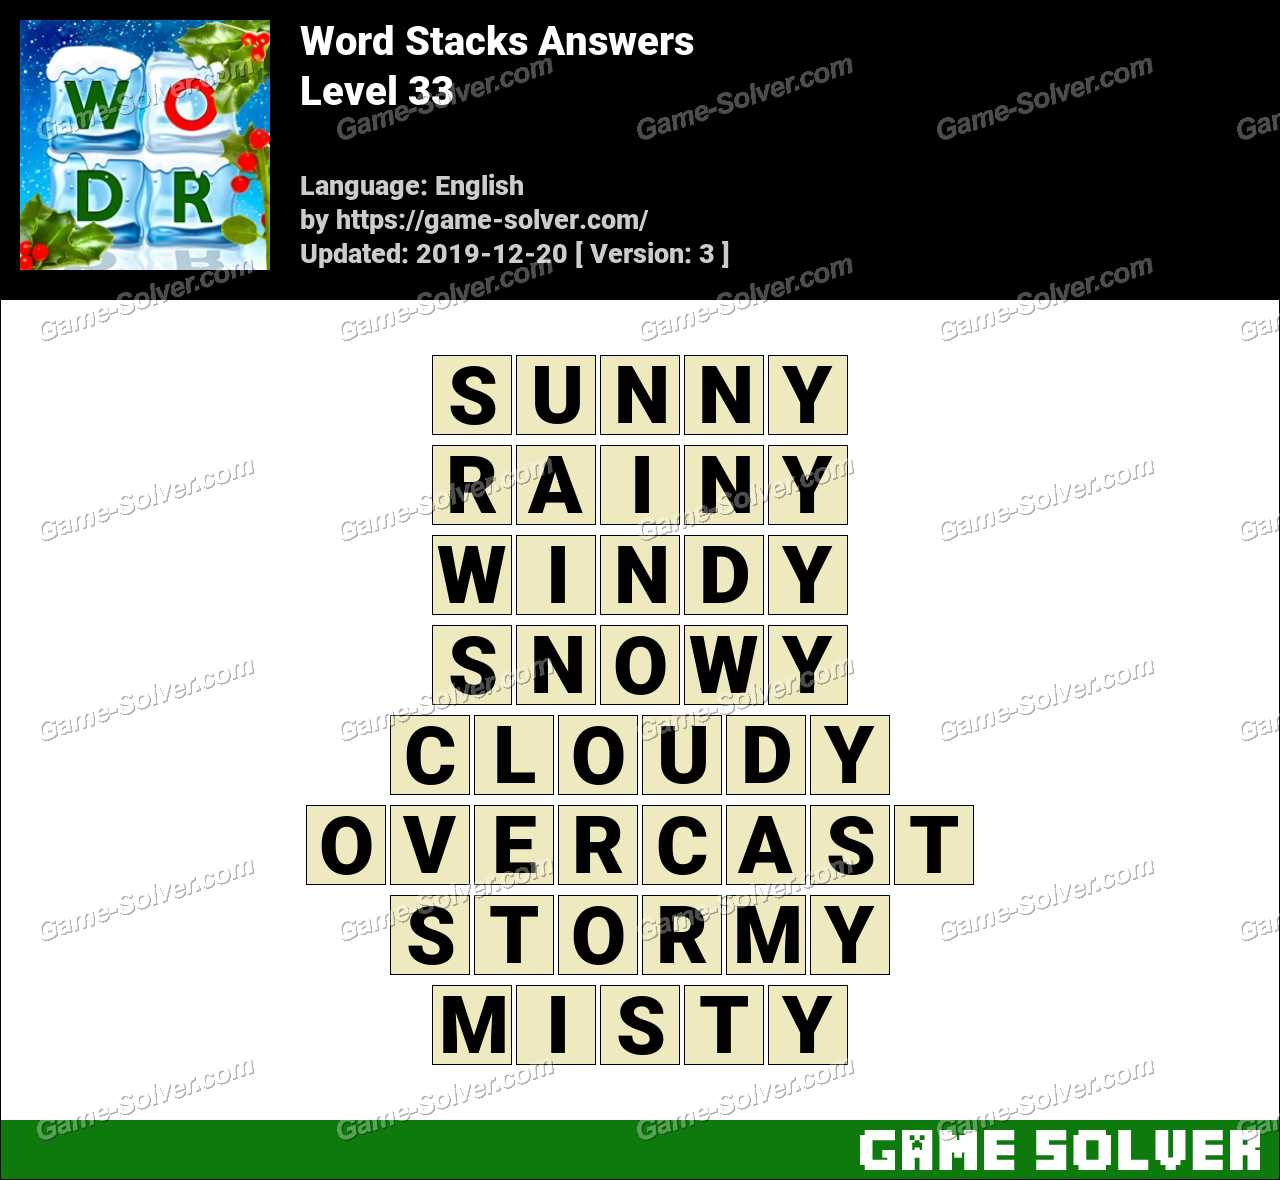 Word Stacks Level 33 Answers